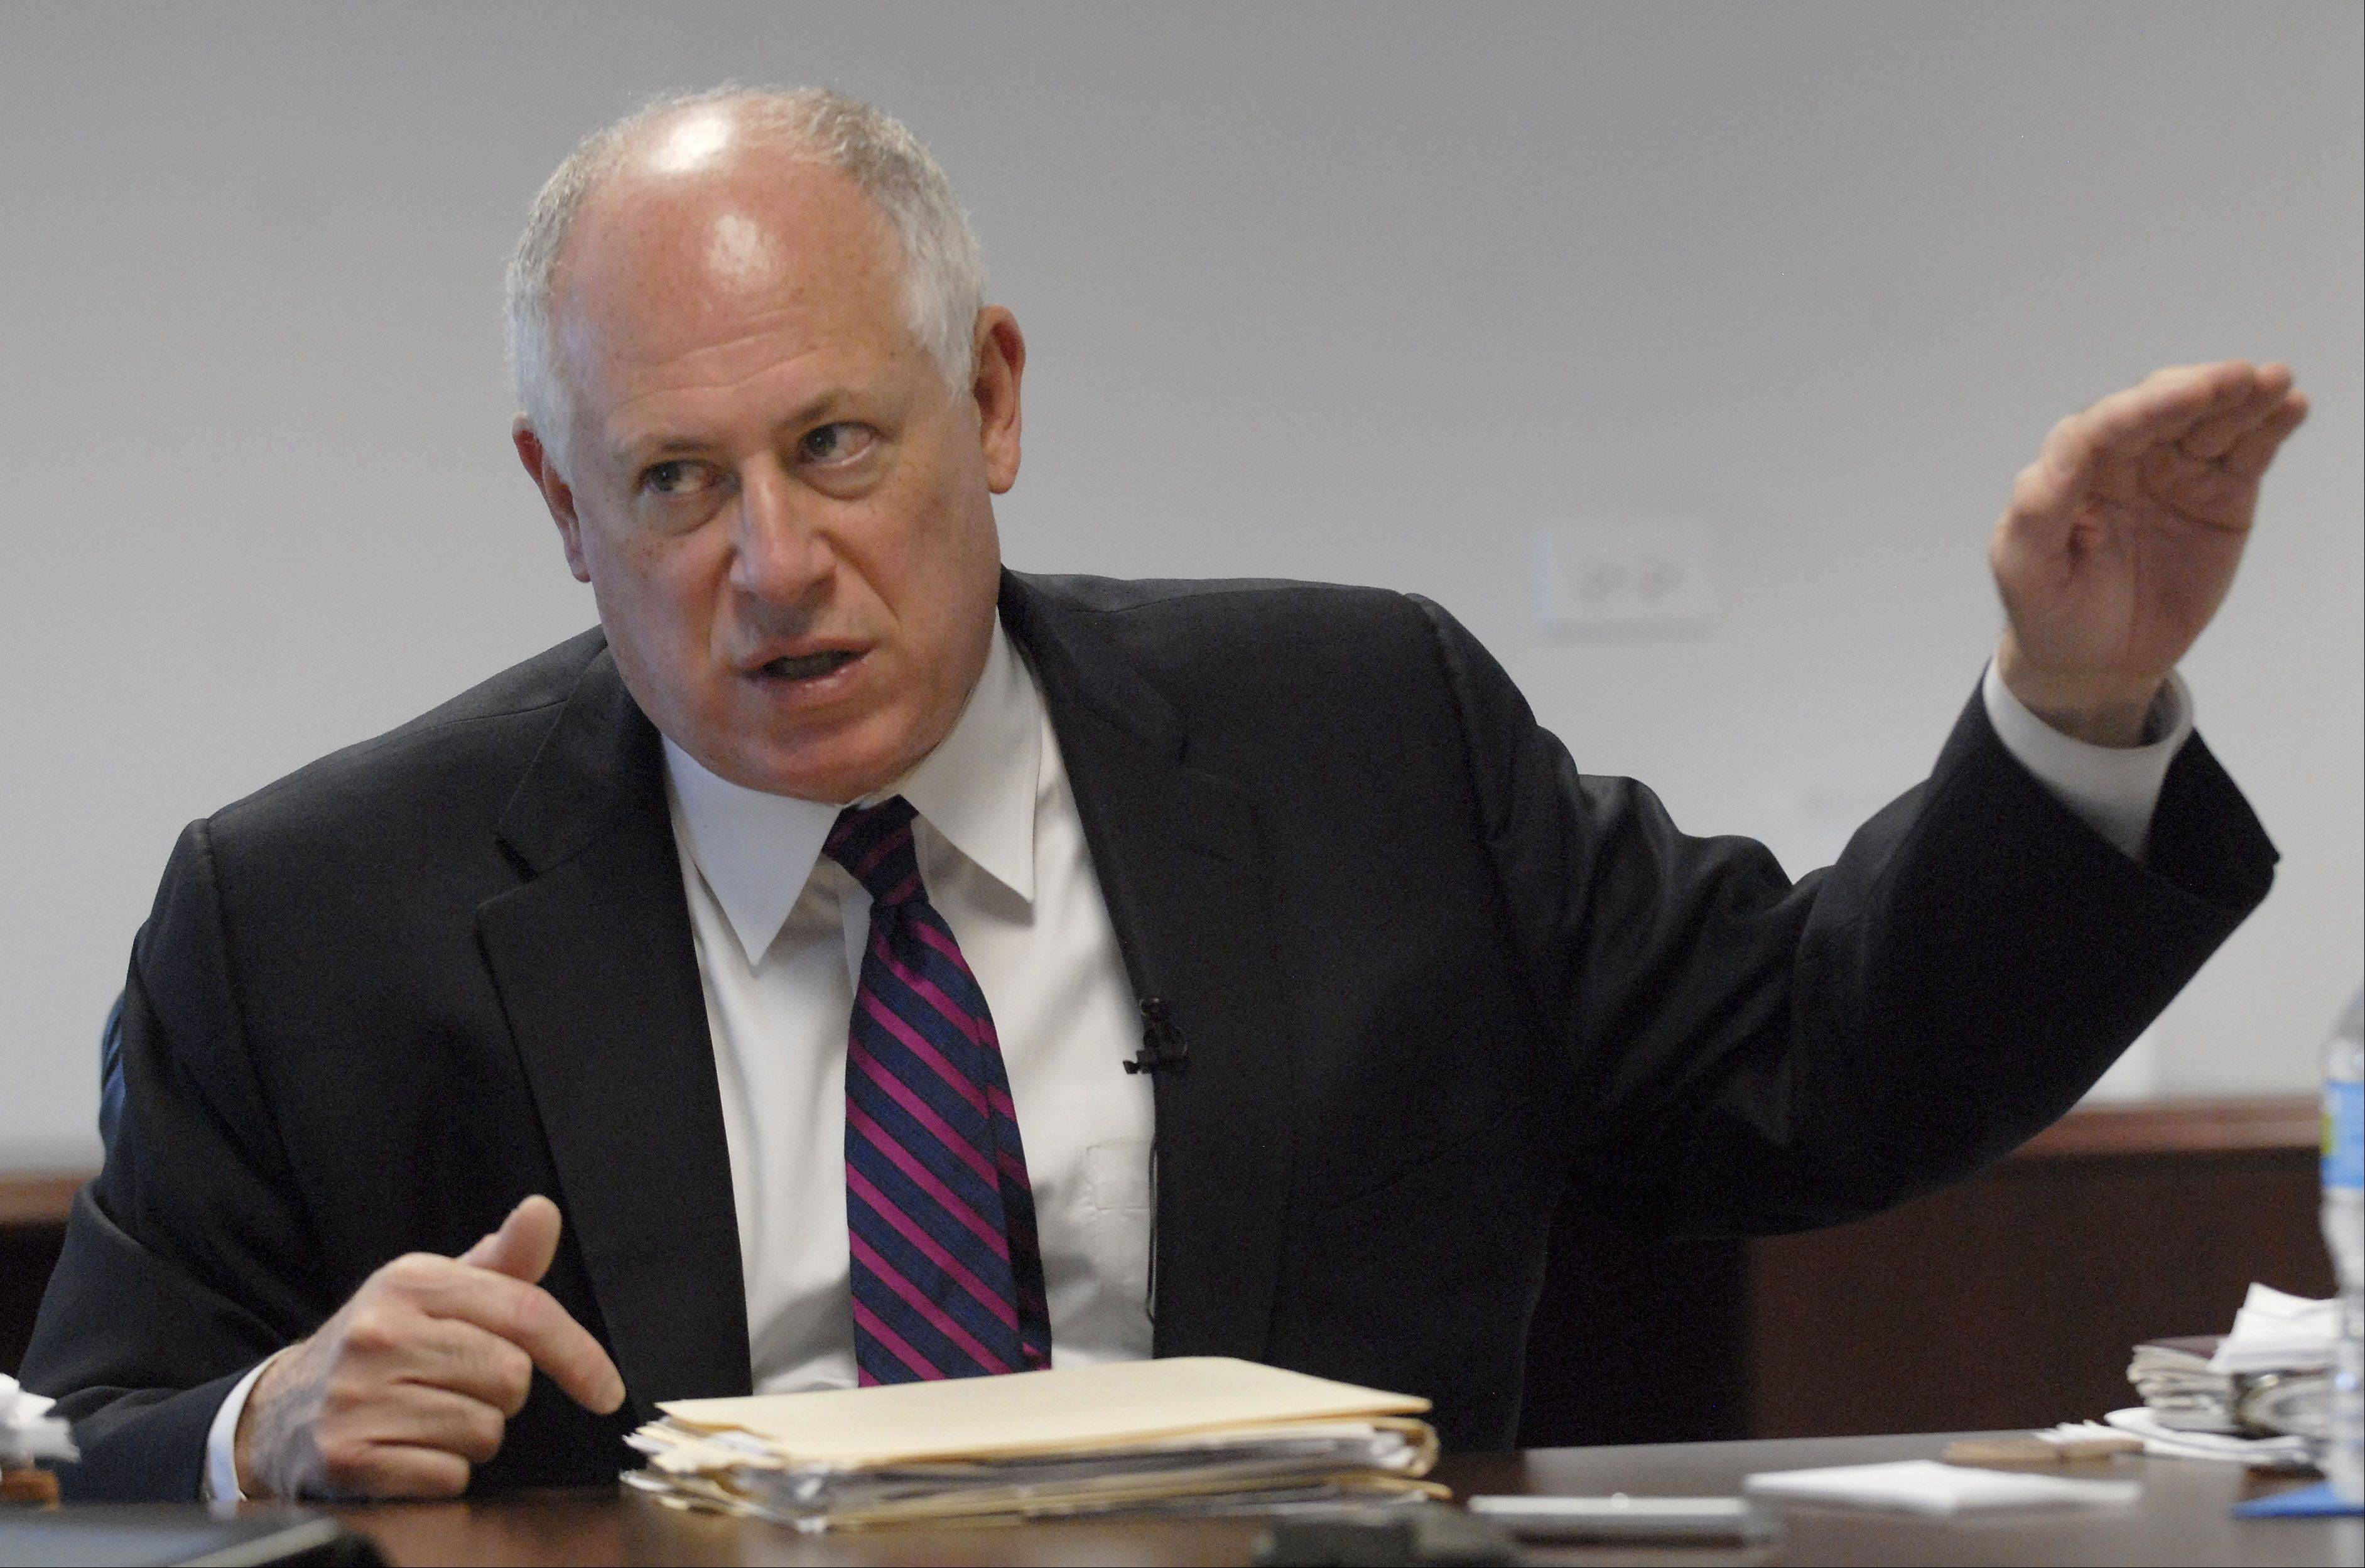 Illinois Gov. Pat Quinn, meeting with the Daily Herald editorial board, said cutting public pension benefits and reducing Medicaid costs are his priorities to get done by the legislature's May 31 scheduled adjournment.